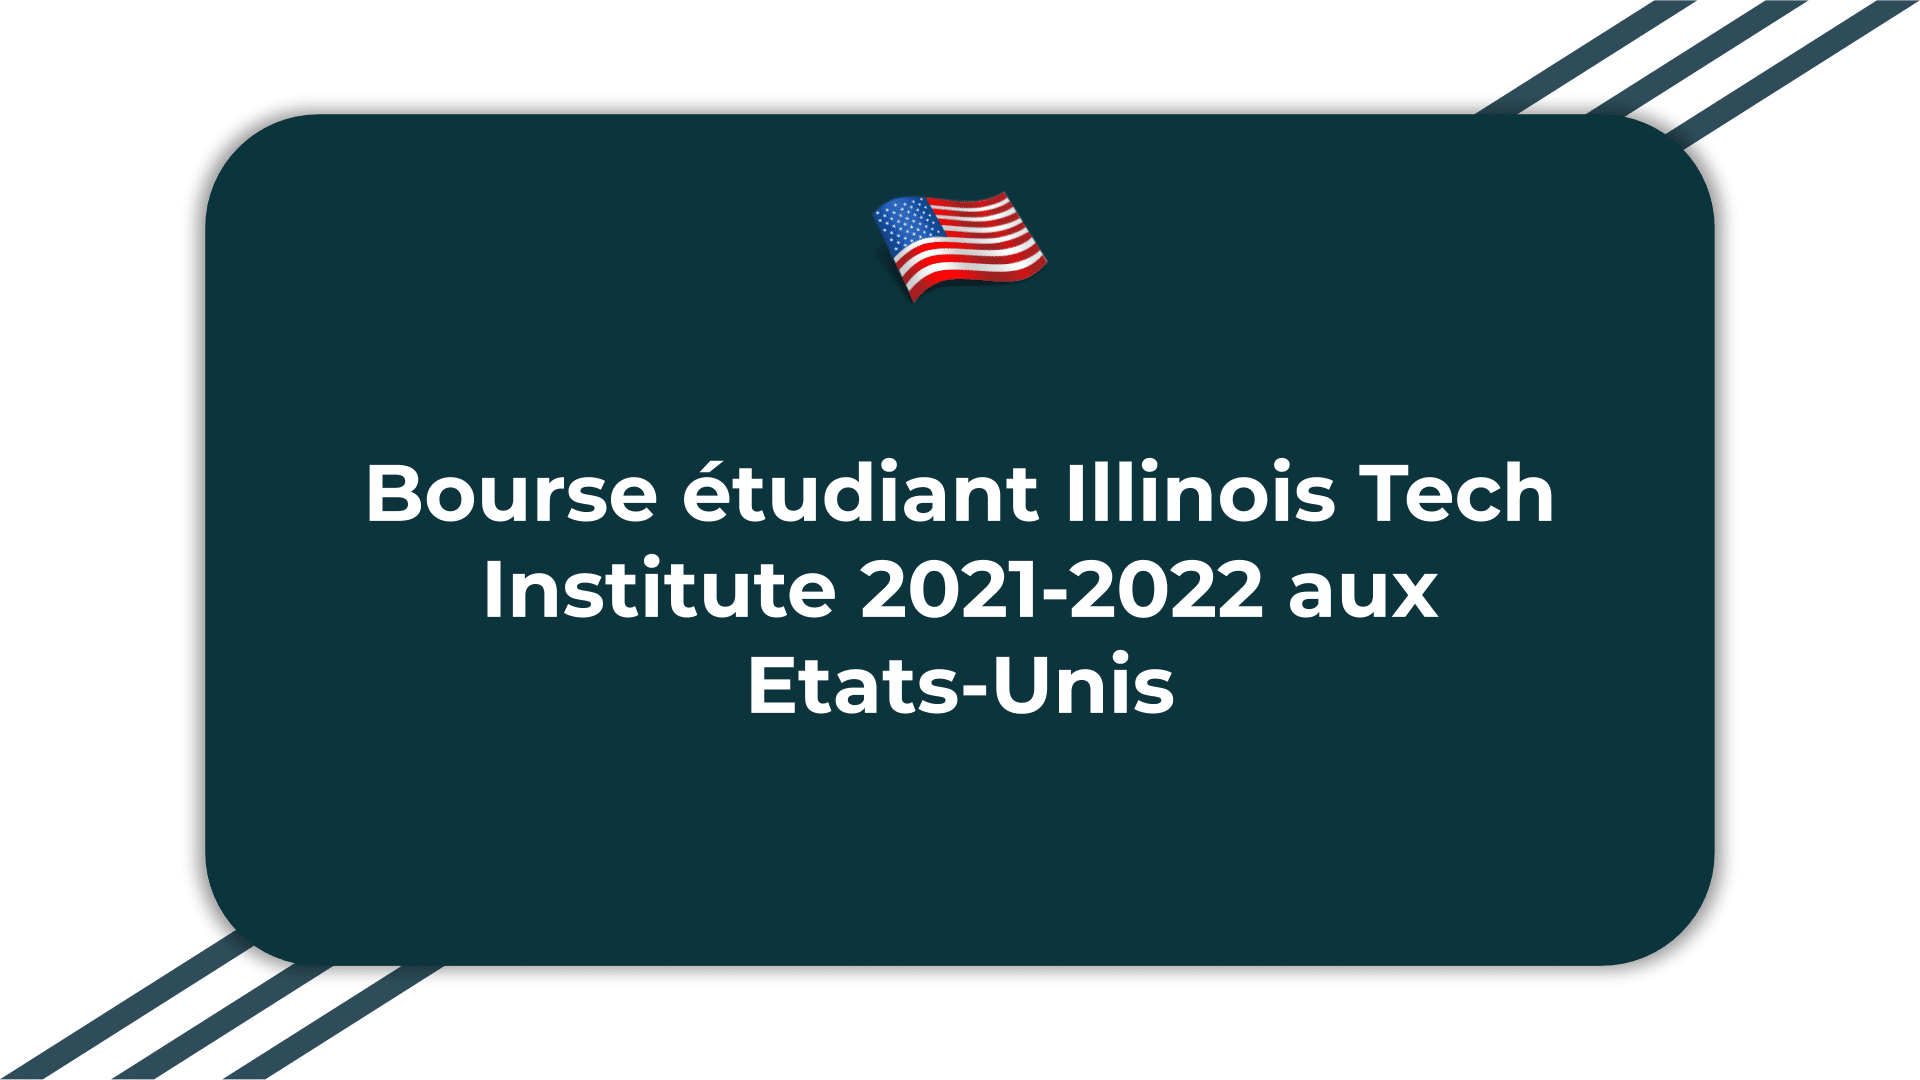 Bourse étudiant Illinois Tech Institute